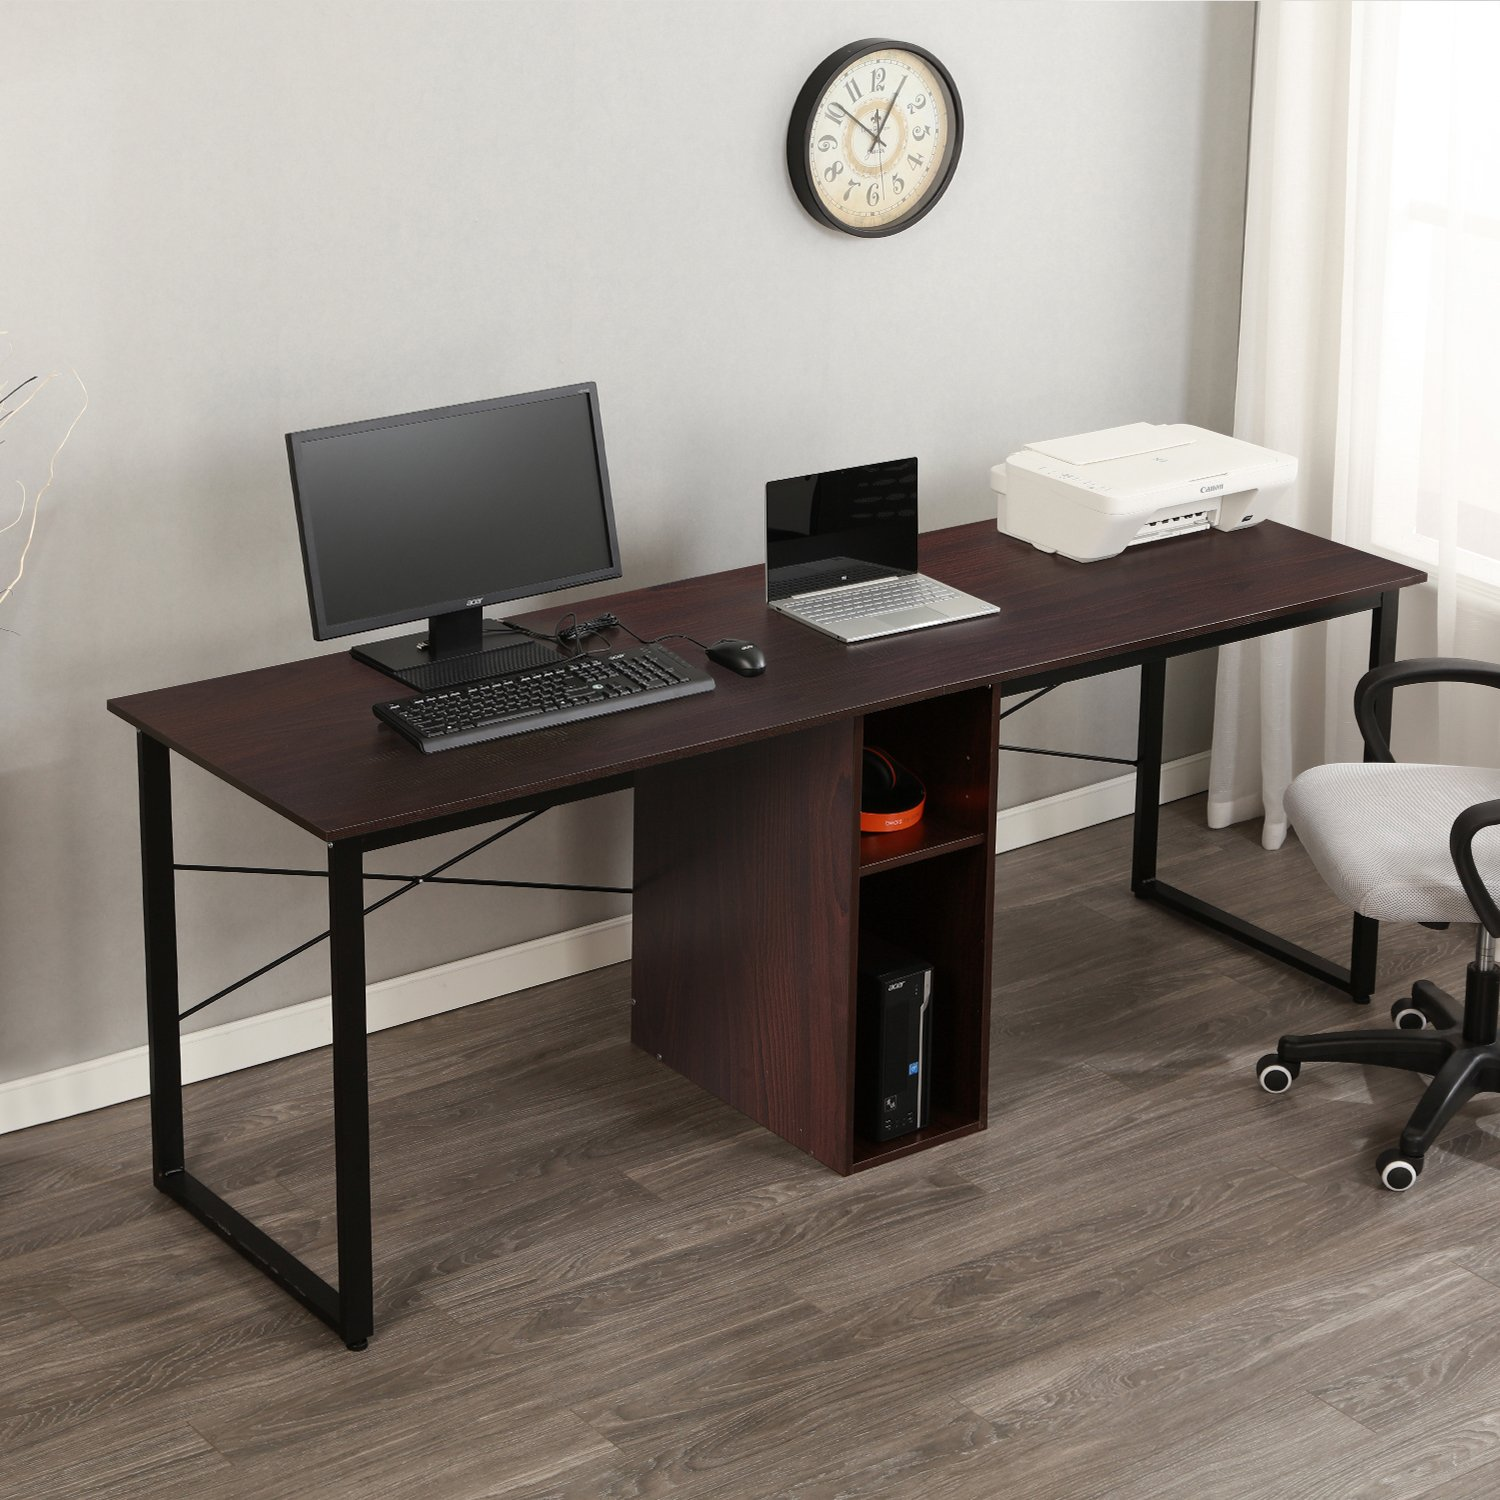 SogesPower 78 inches Double Office Desk Computer Desk with Storage for 2-Person, Large Desk Workstations for Home Office, Red Walnut by SogesPower